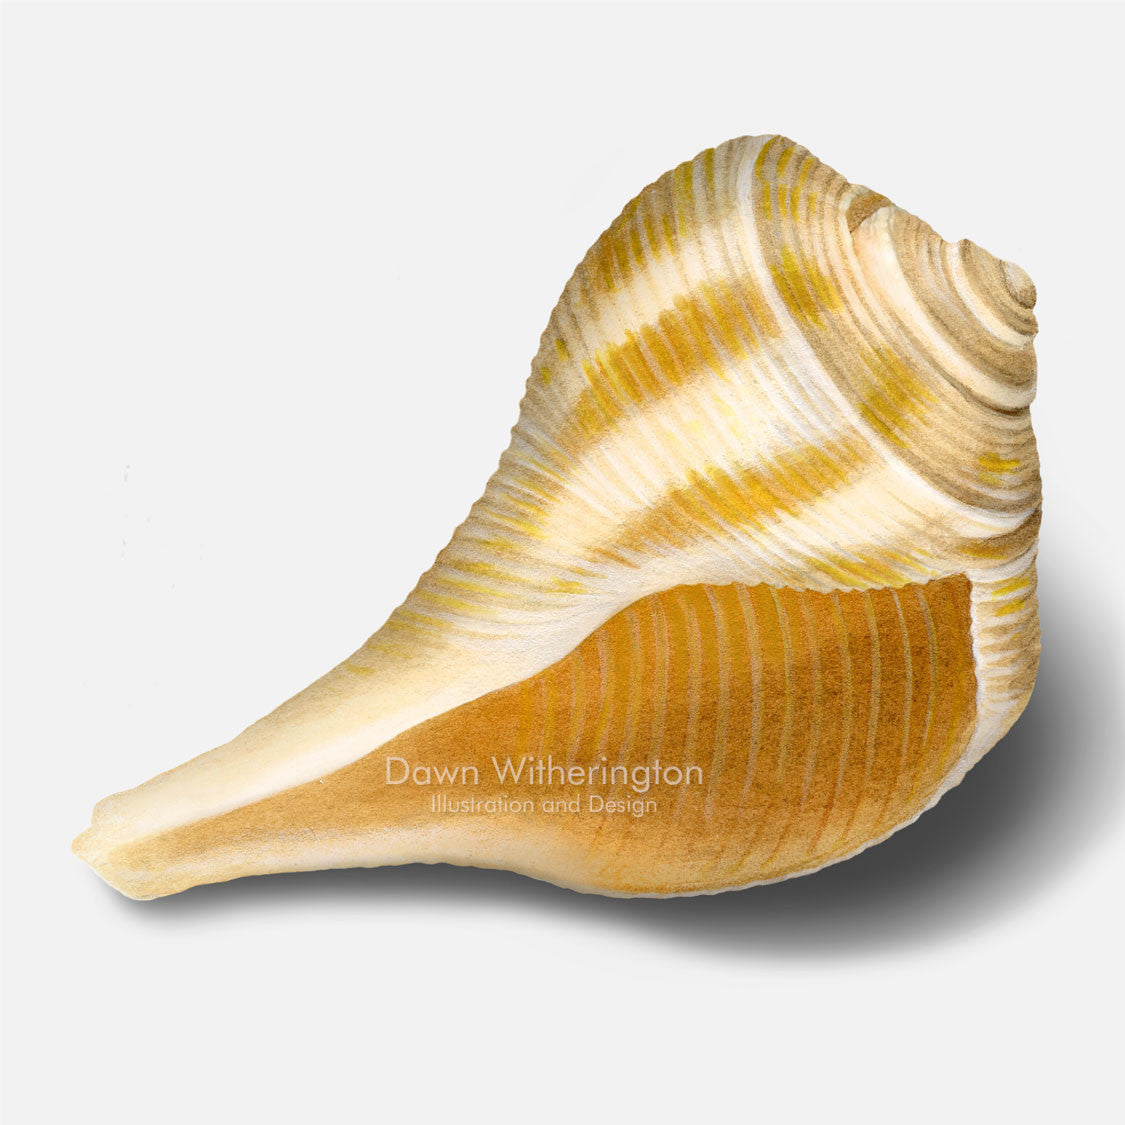 Pear whelk shell